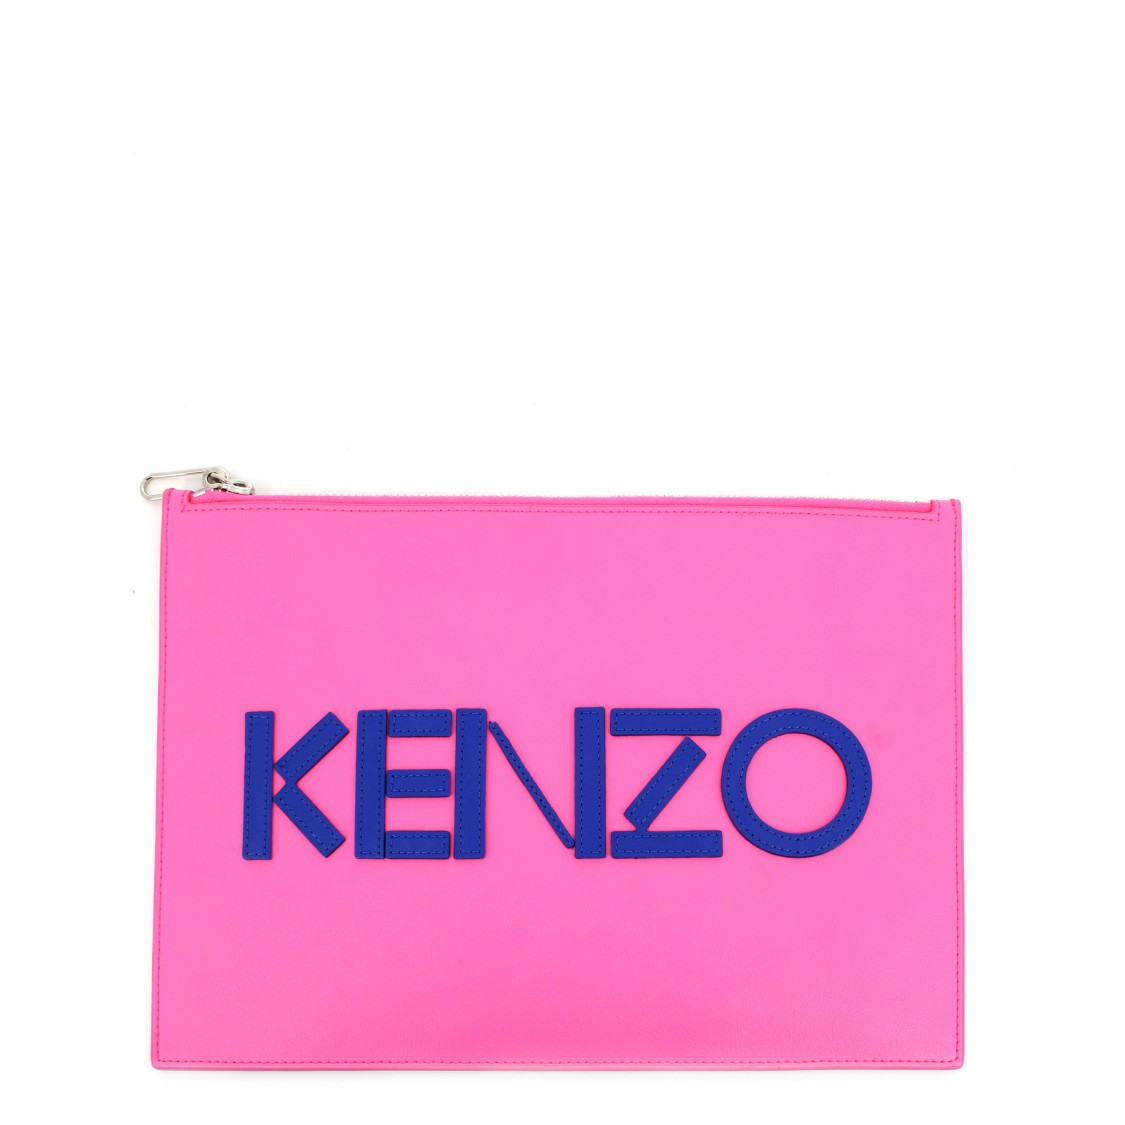 Kenzo COLORBLOCK LEATHER CLUTCH